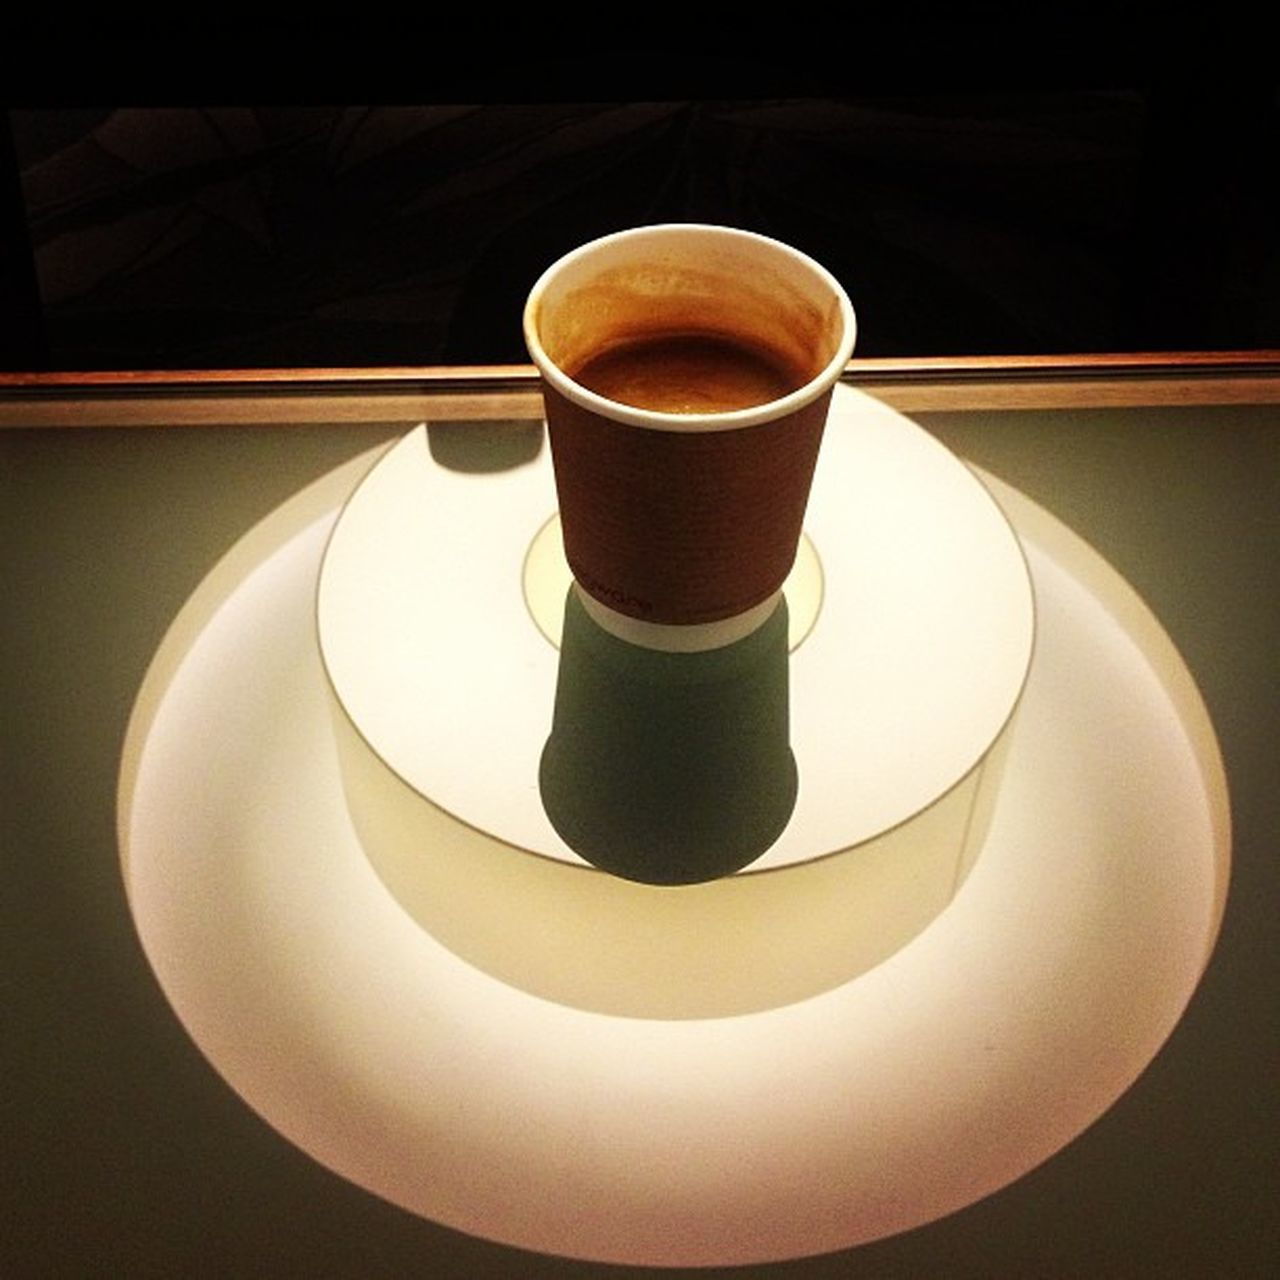 refreshment, drink, coffee cup, table, saucer, food and drink, indoors, coffee - drink, no people, plate, freshness, close-up, day